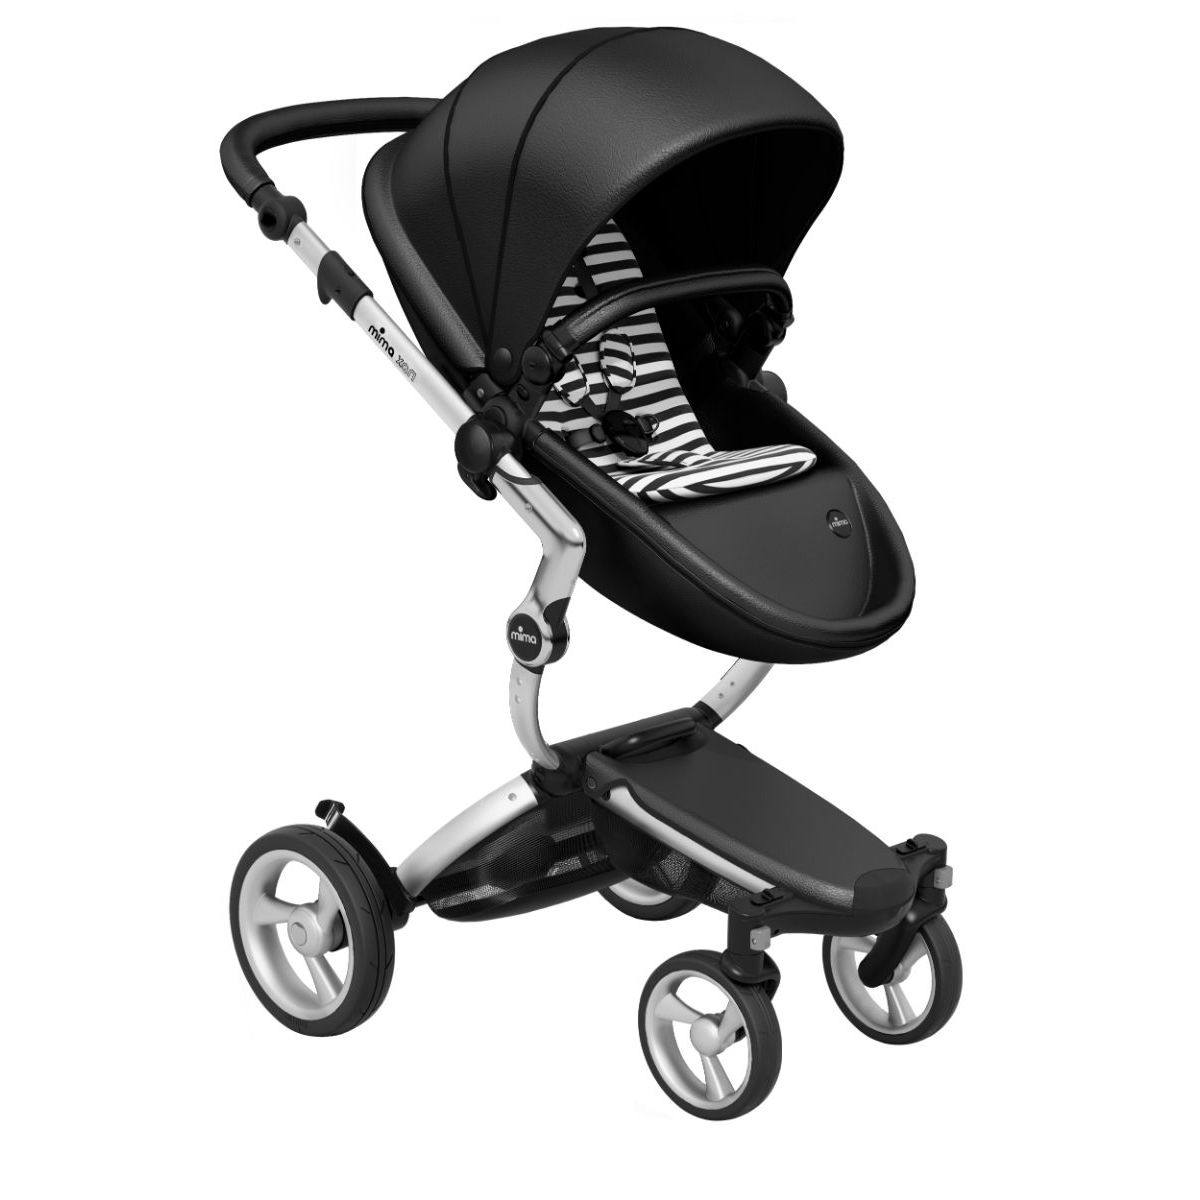 Mima Xari Black with Silver Chassis - Black and White